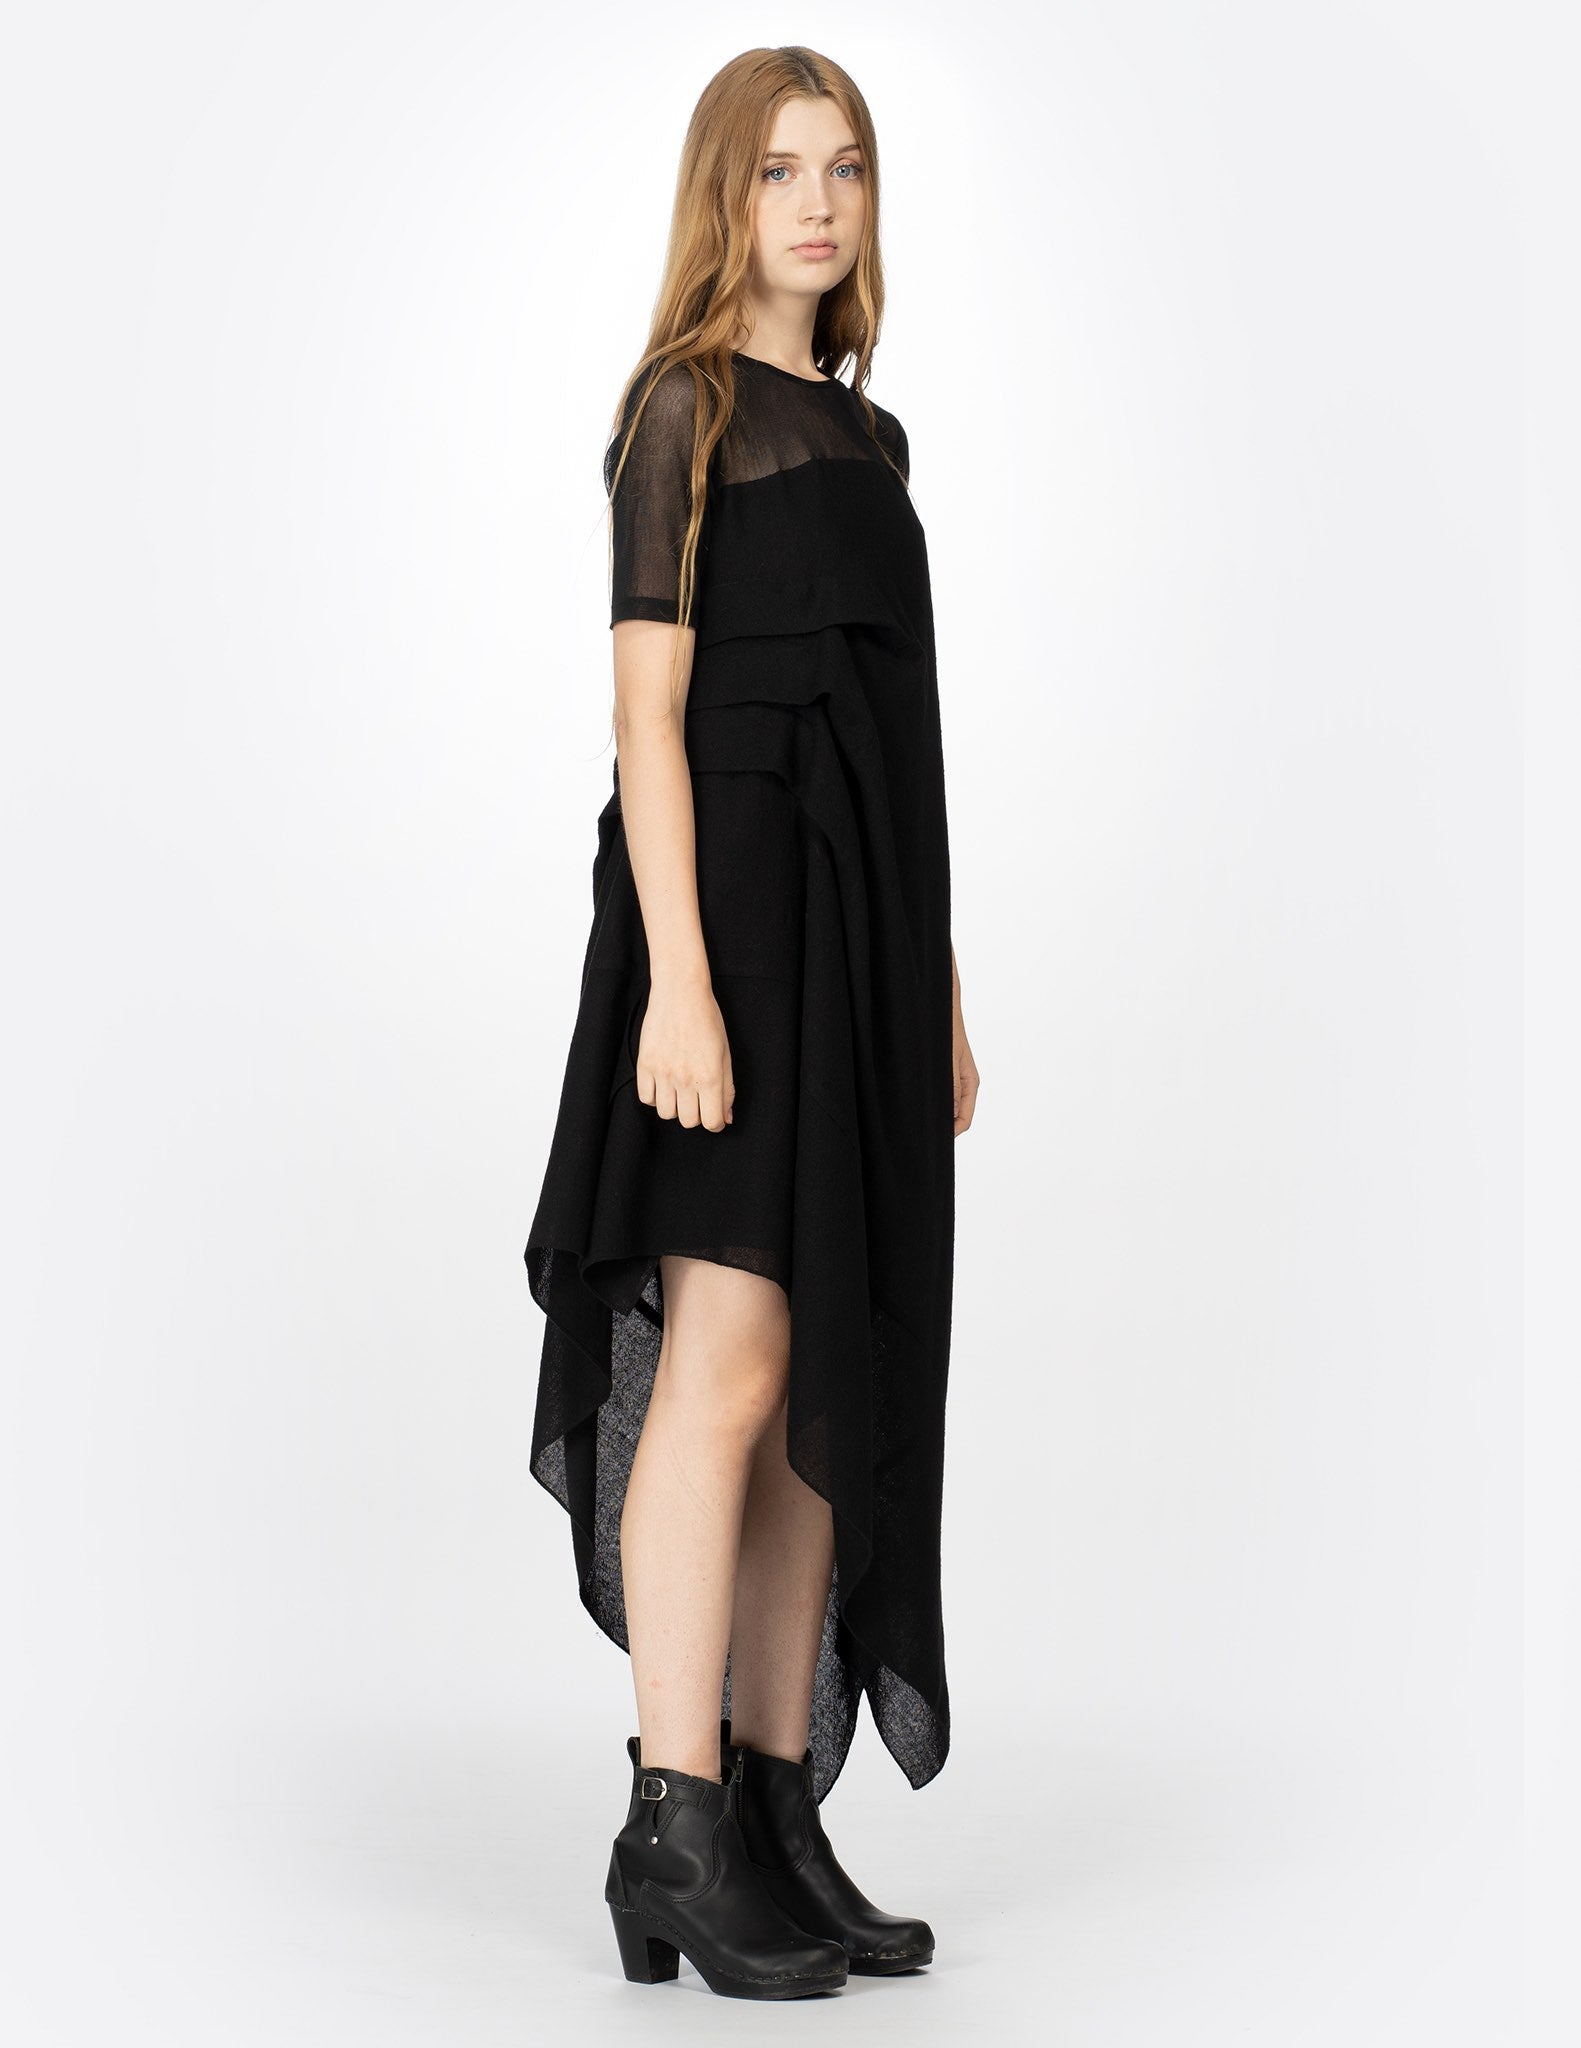 morgane le fay wool mid-length dress with layered drapes, short cotton tulle sleeves. made in new york.